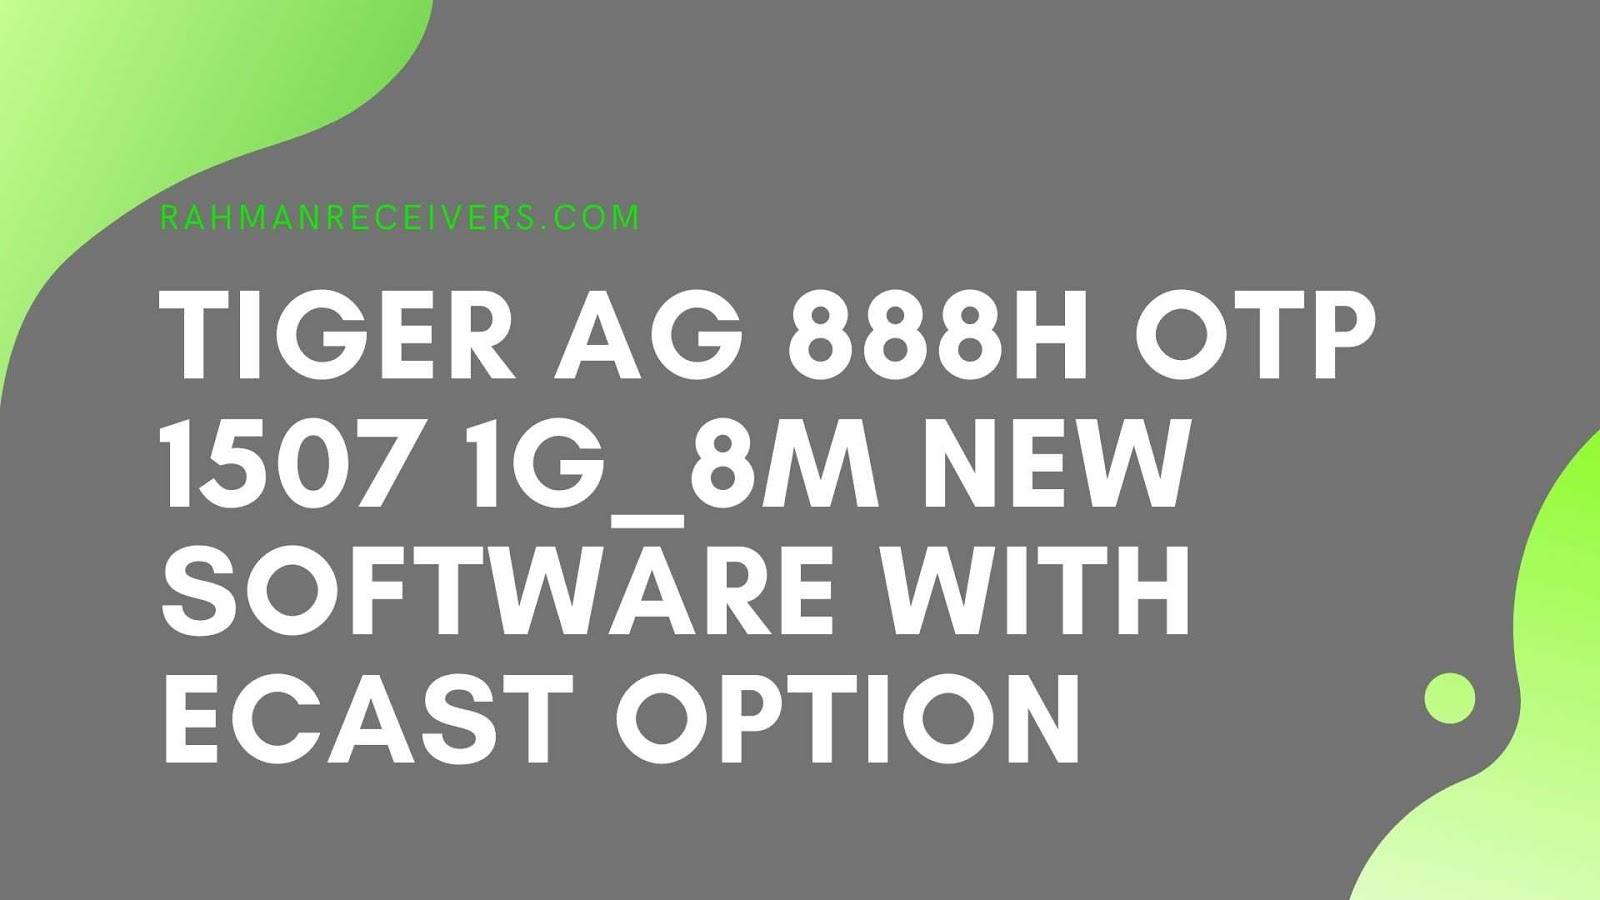 TIGER AG 888H OTP 1507 1G_8M NEW SOFTWARE WITH ECAST OPTION 02 APRIL 2020